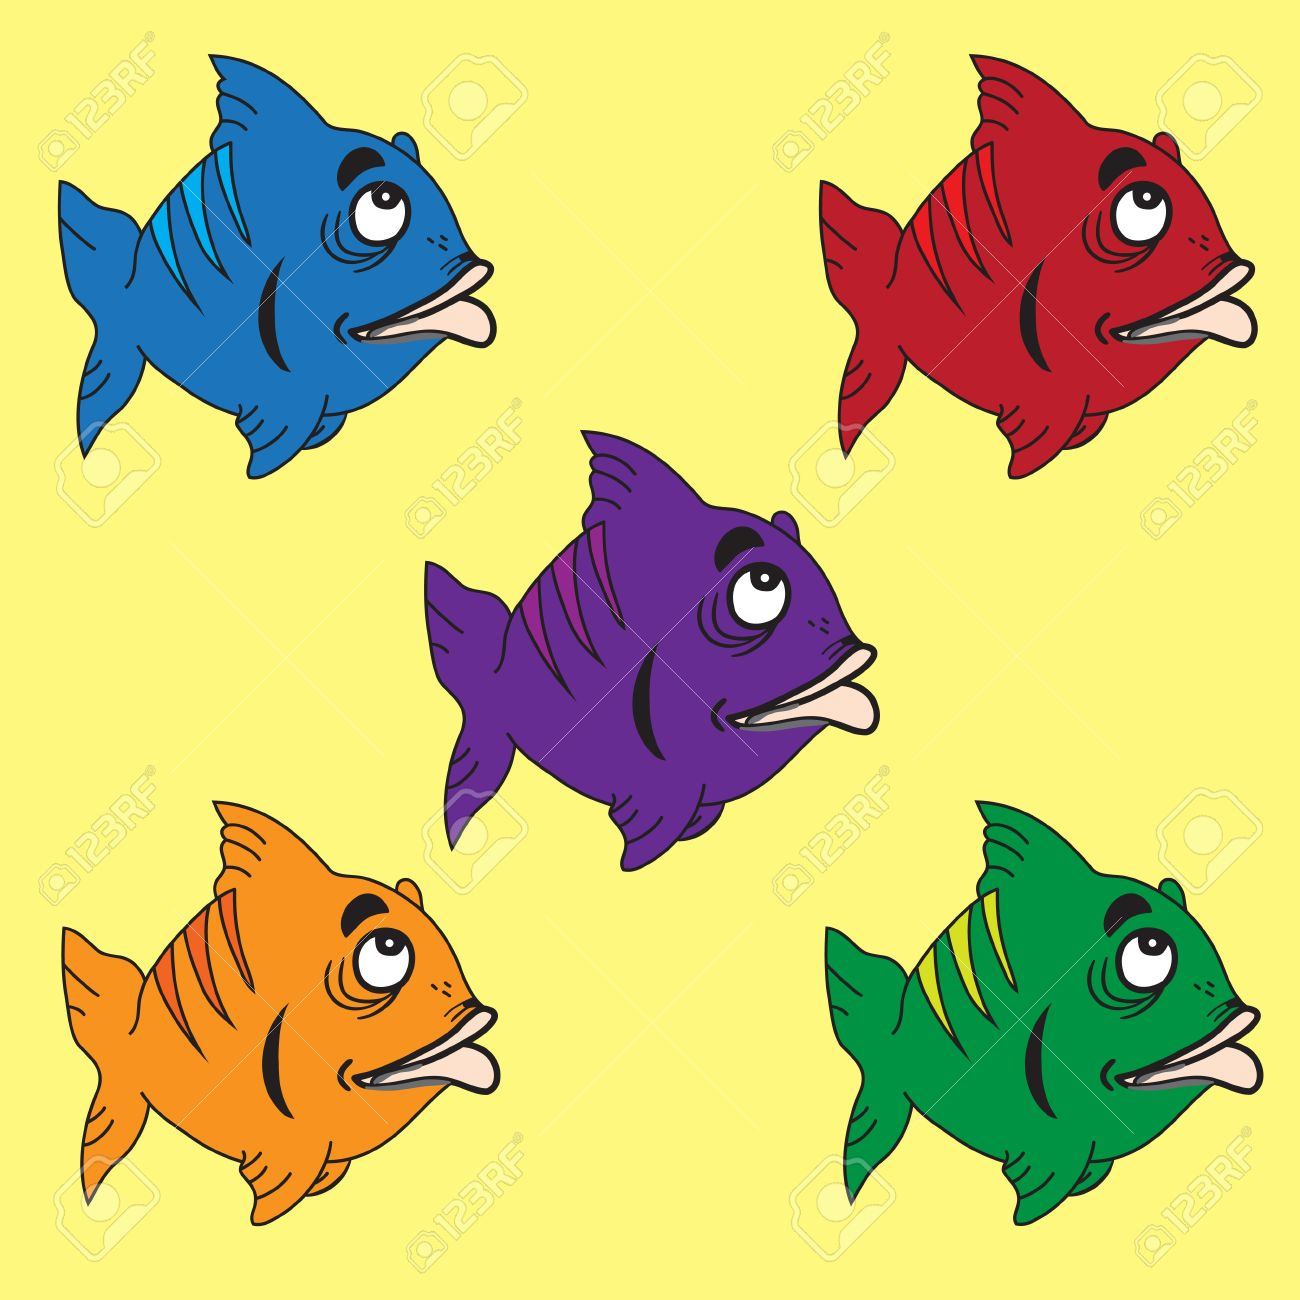 - Cartoon Fish In 5 Colour Combinations On A Yellow Background